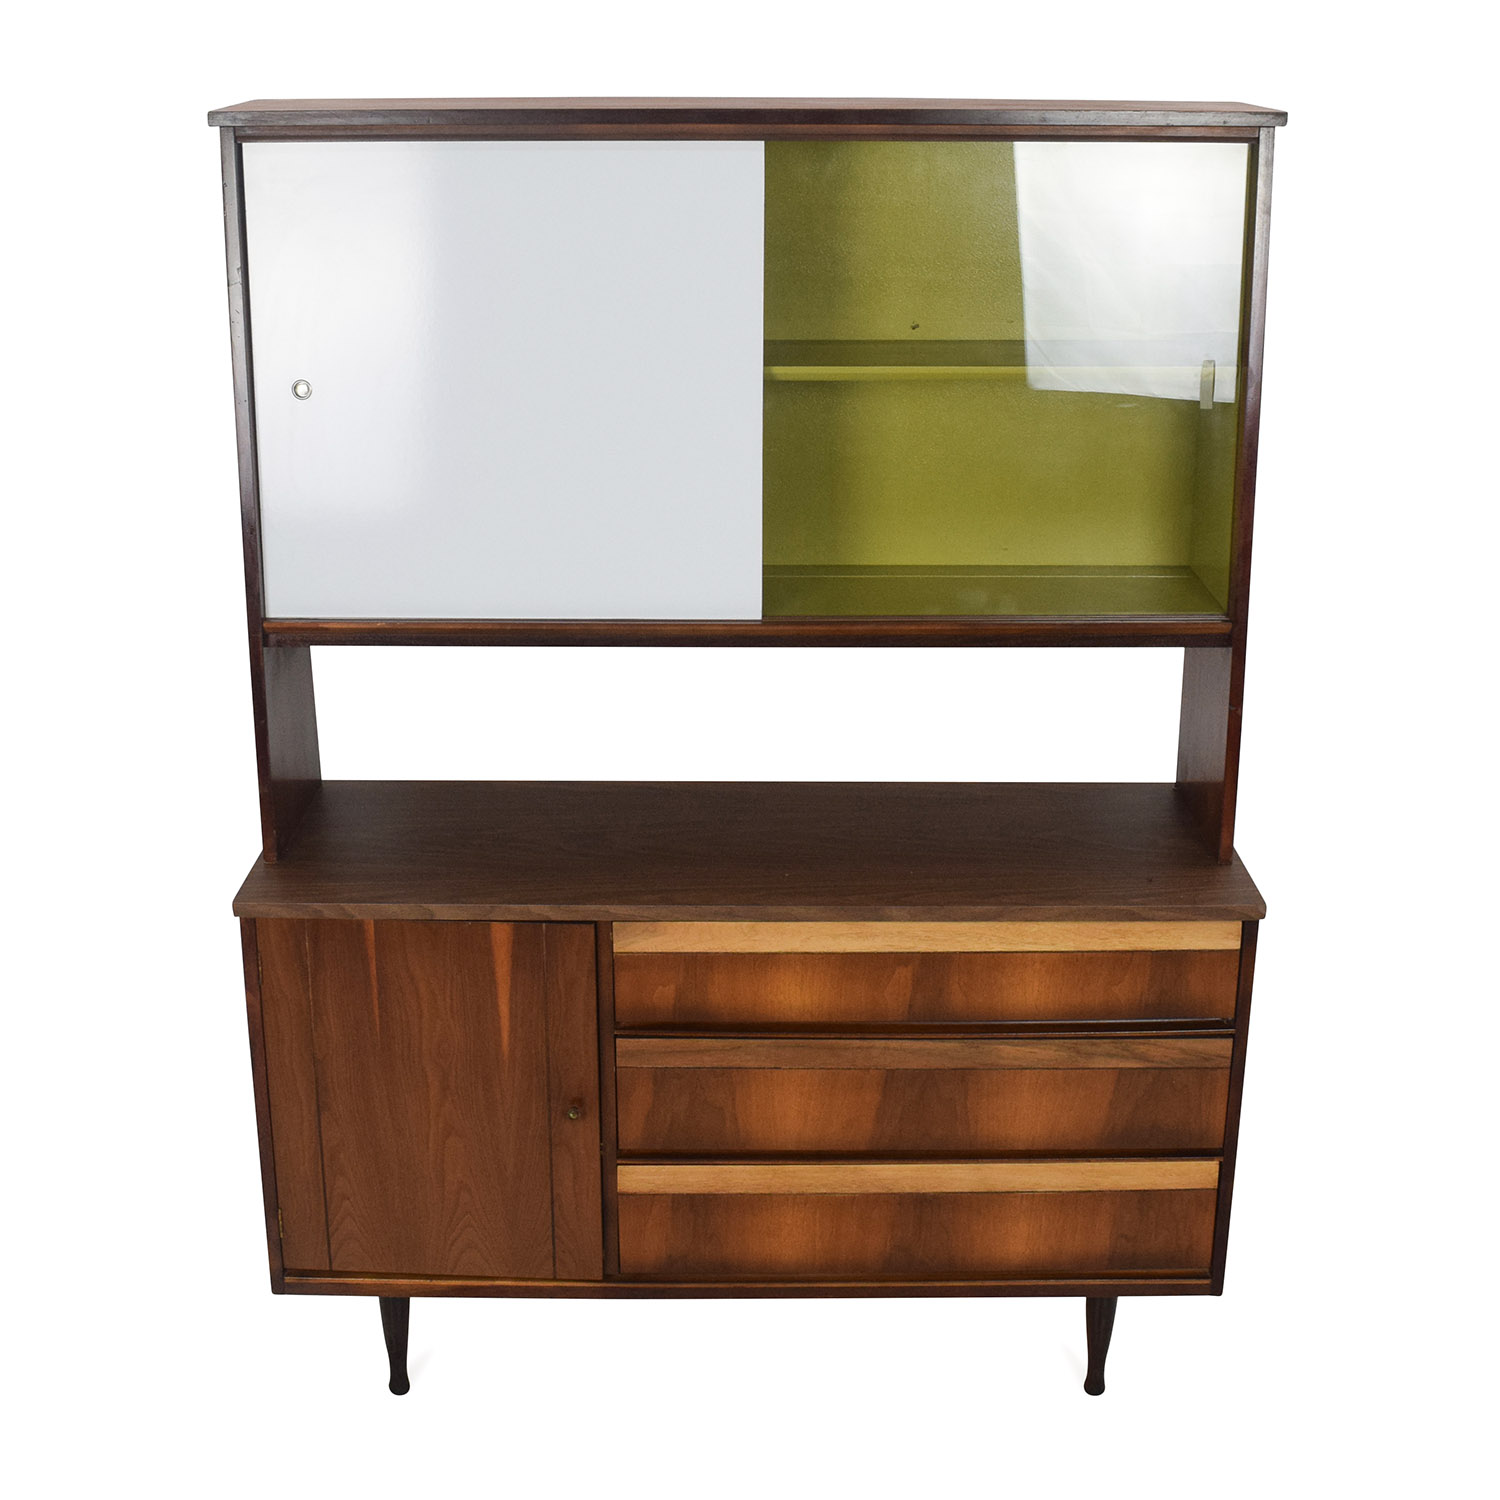 shop Vintage Mid Century Sideboard Credenza Cabinet Unknown Brand Cabinets & Sideboards